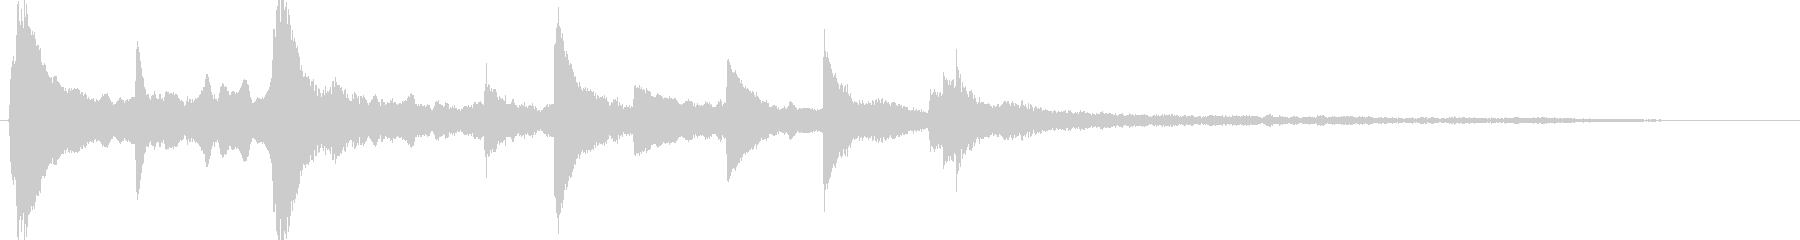 Sound logo inspiring piano melody's unreproduced waveform